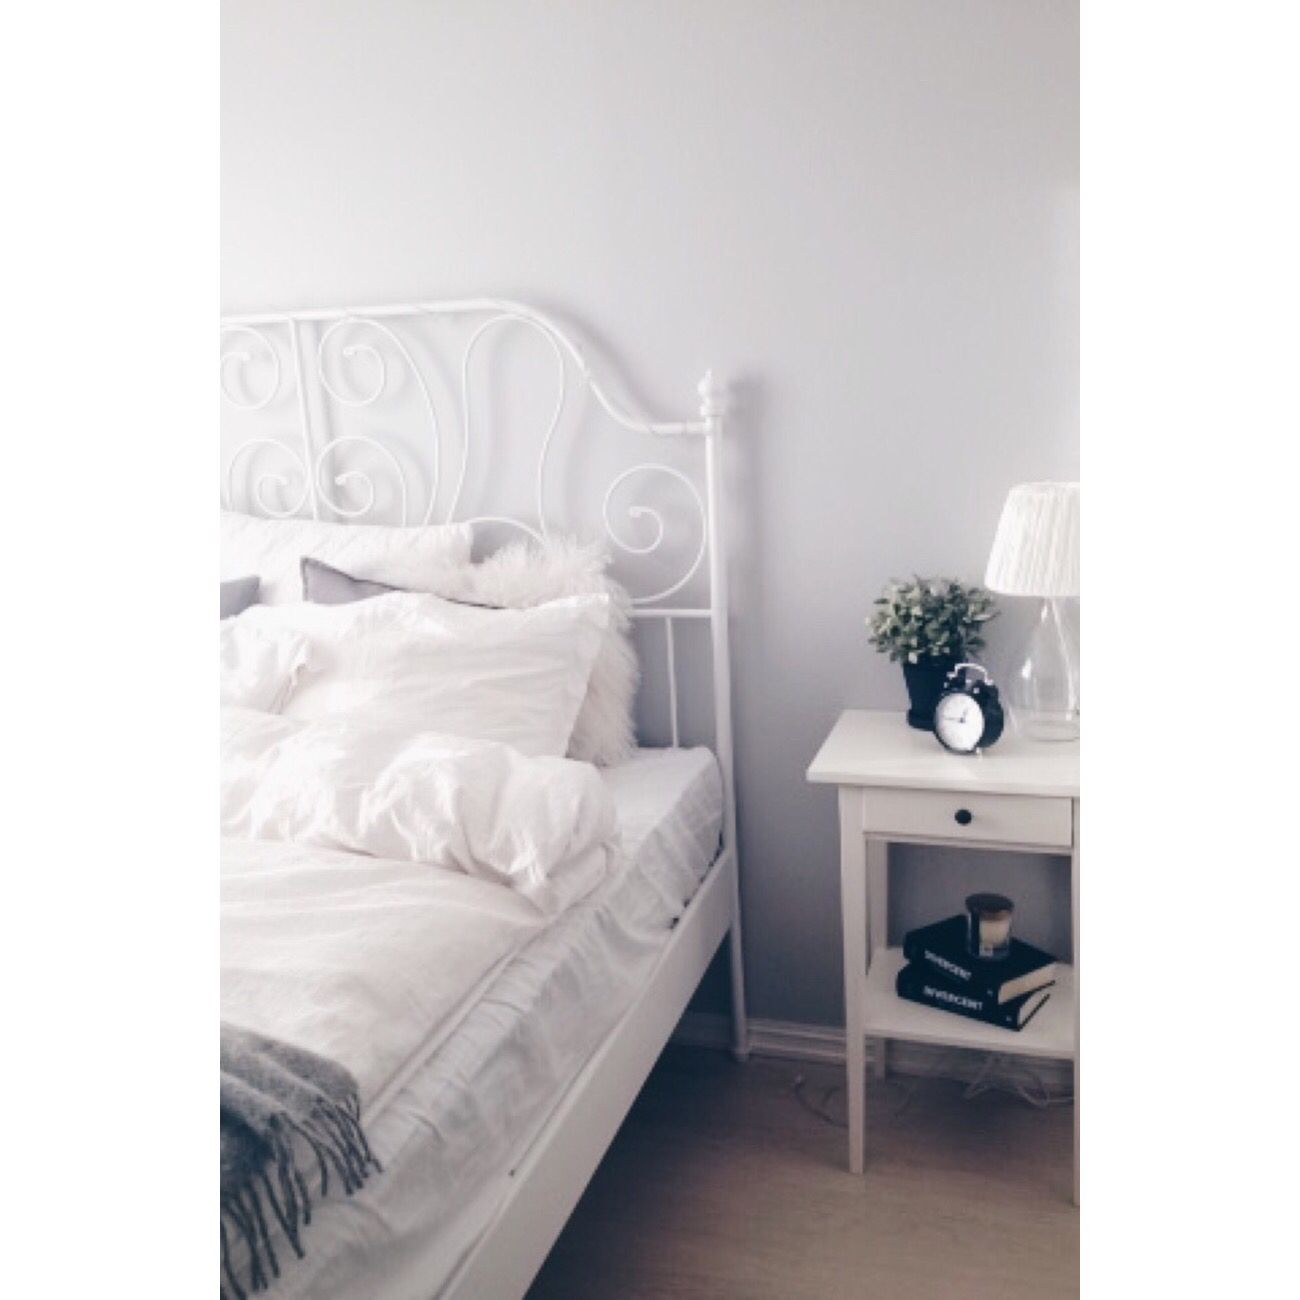 Room inspiration tumblr leirvik bed ikea bedroom for Room inspiration bedroom